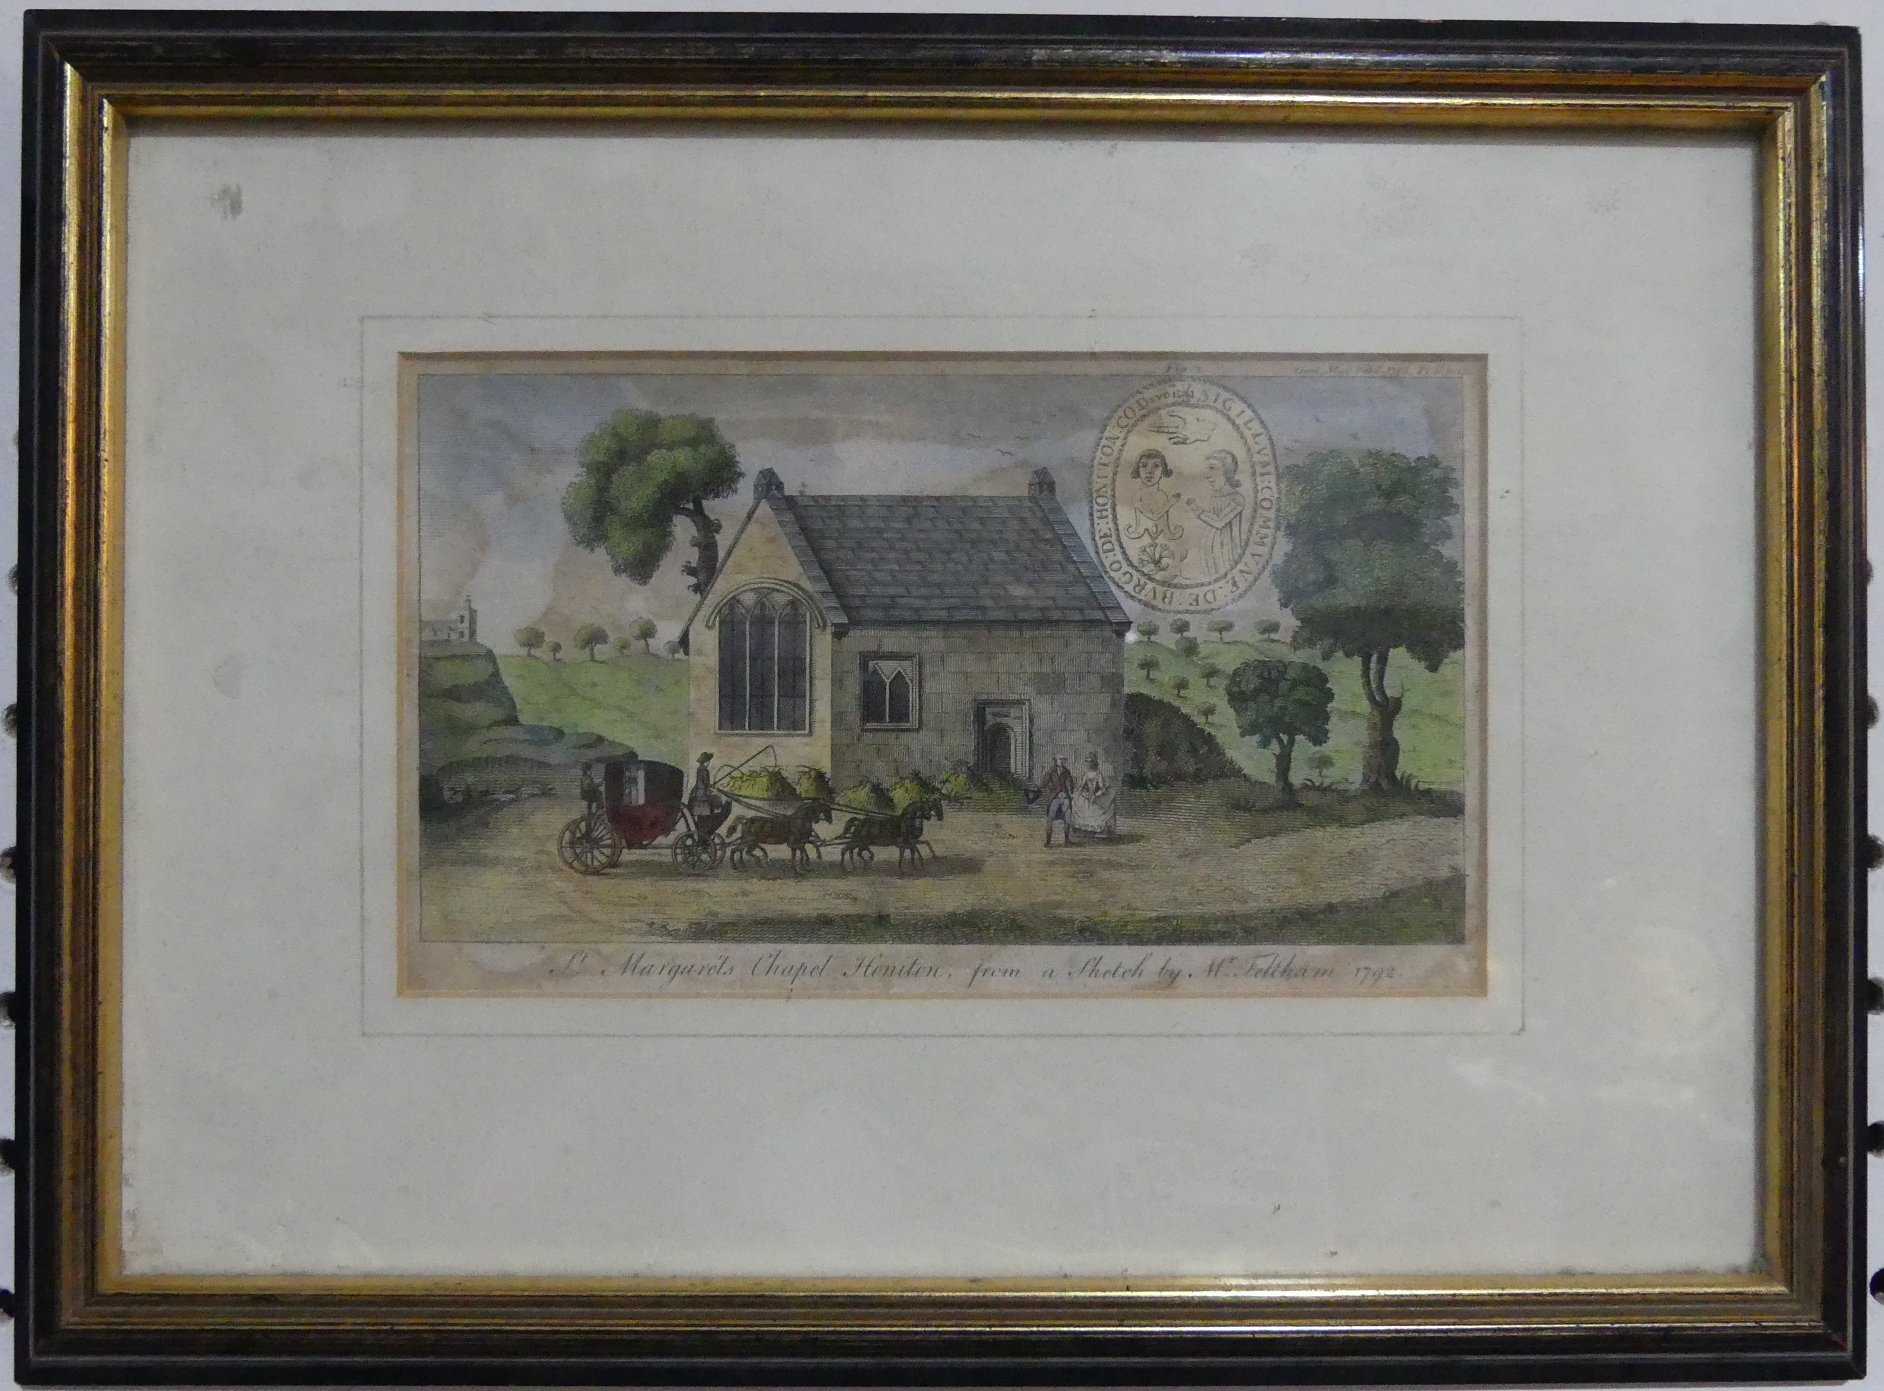 Honiton interest: an antiquarian print of 'St Margaret's Chapel Honiton, from a sketch by Mr